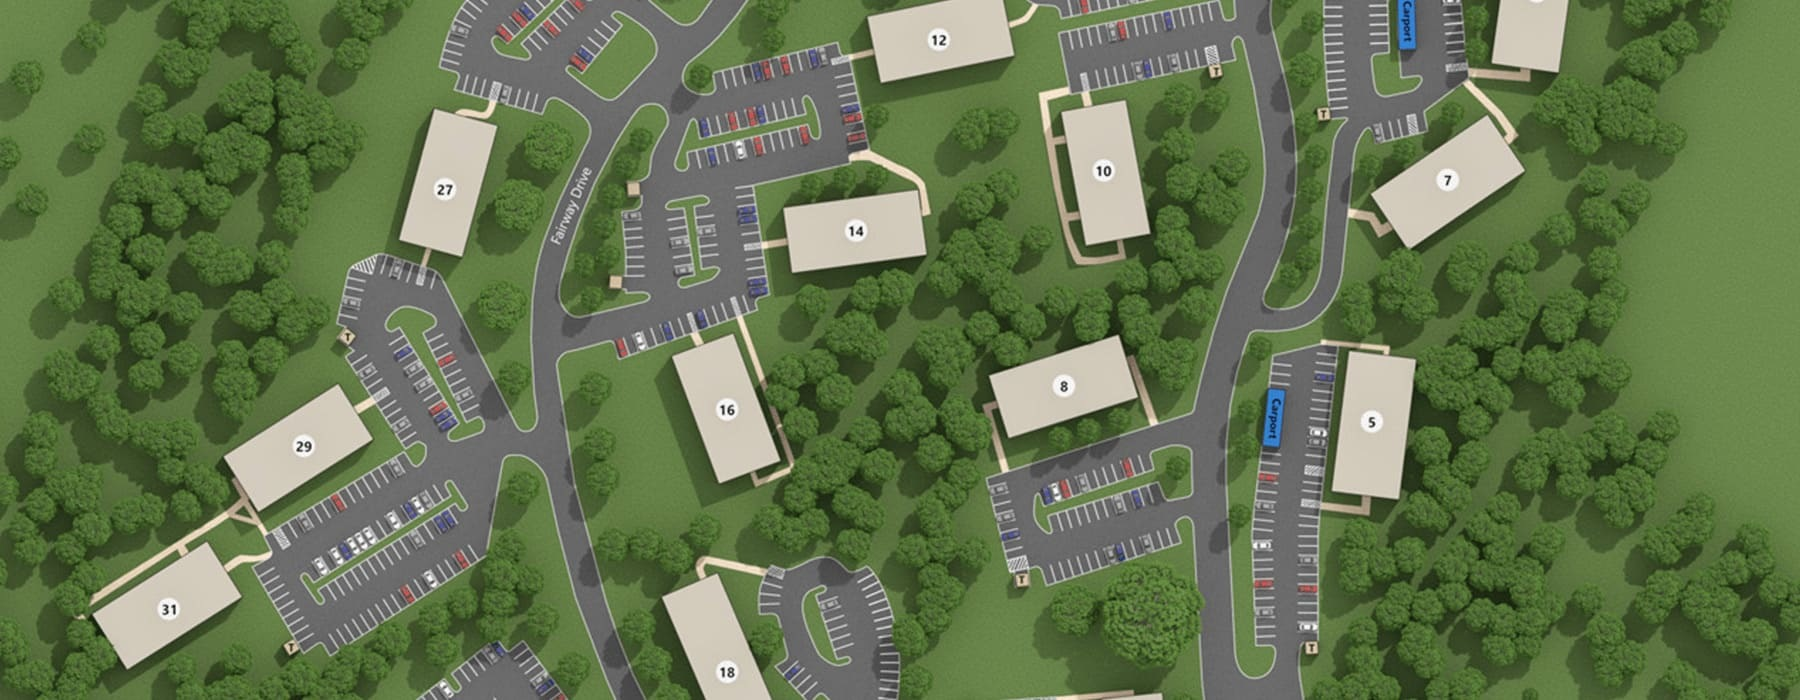 rendering of property site map